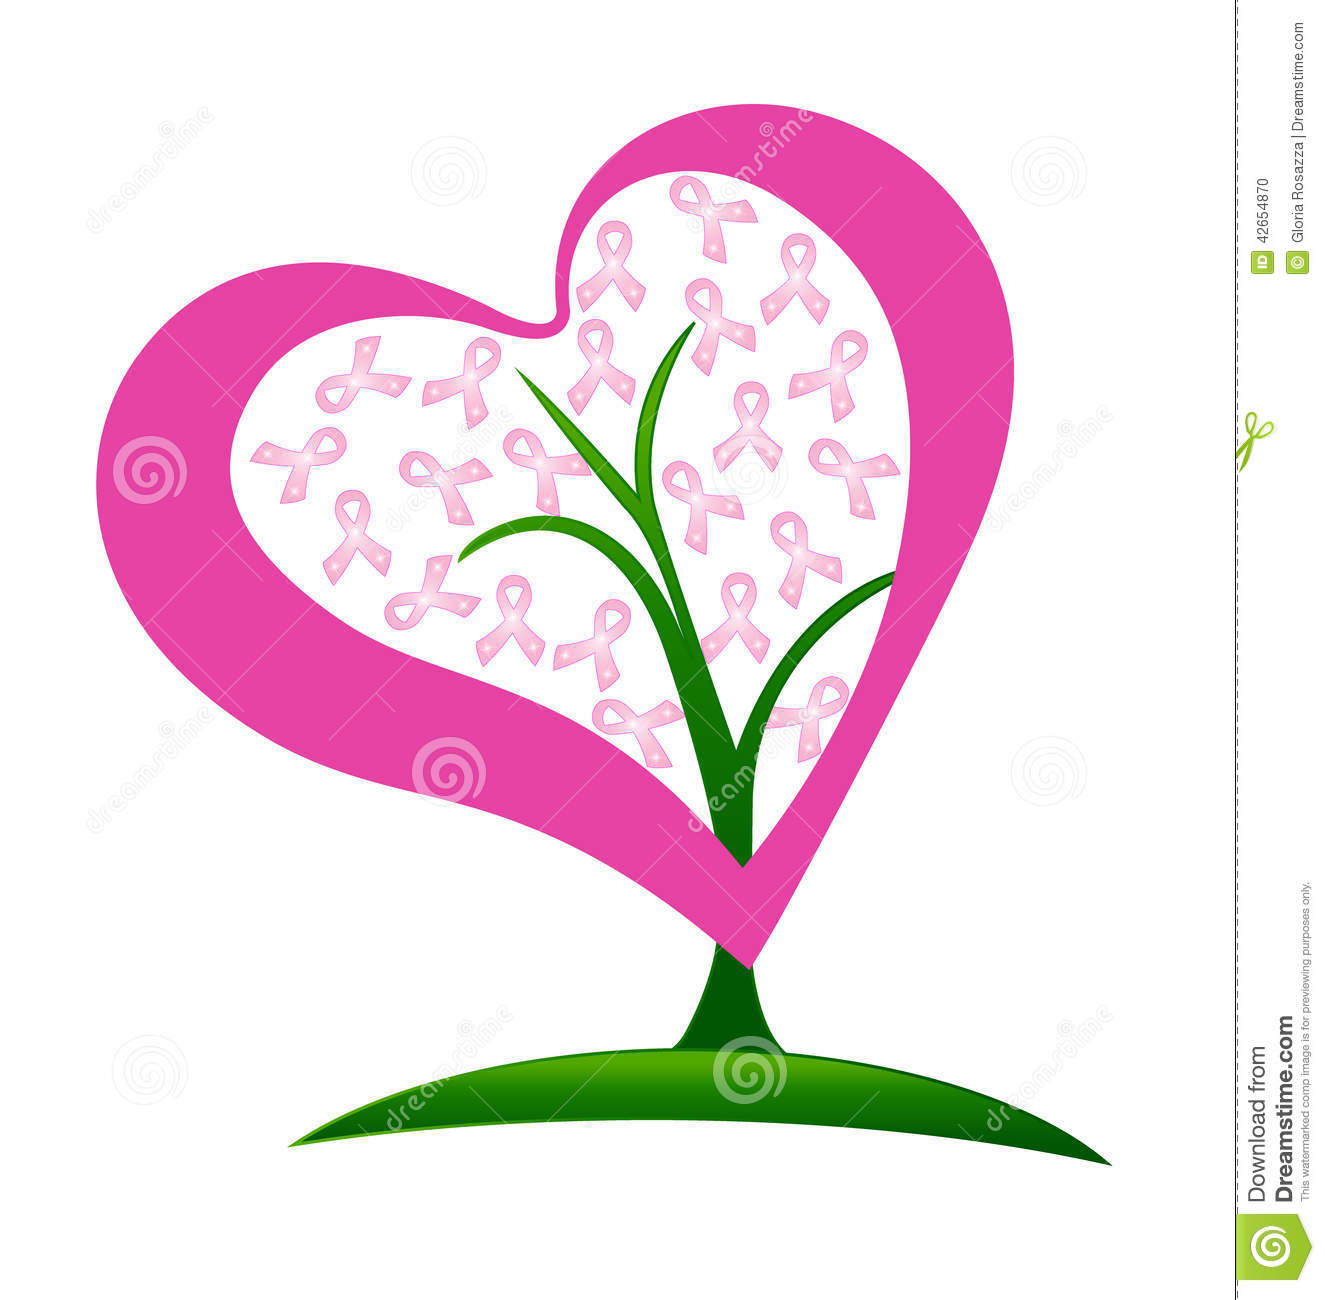 Breast Cancer Ribbons Heart Tree Stock Vector - Image: 42654870